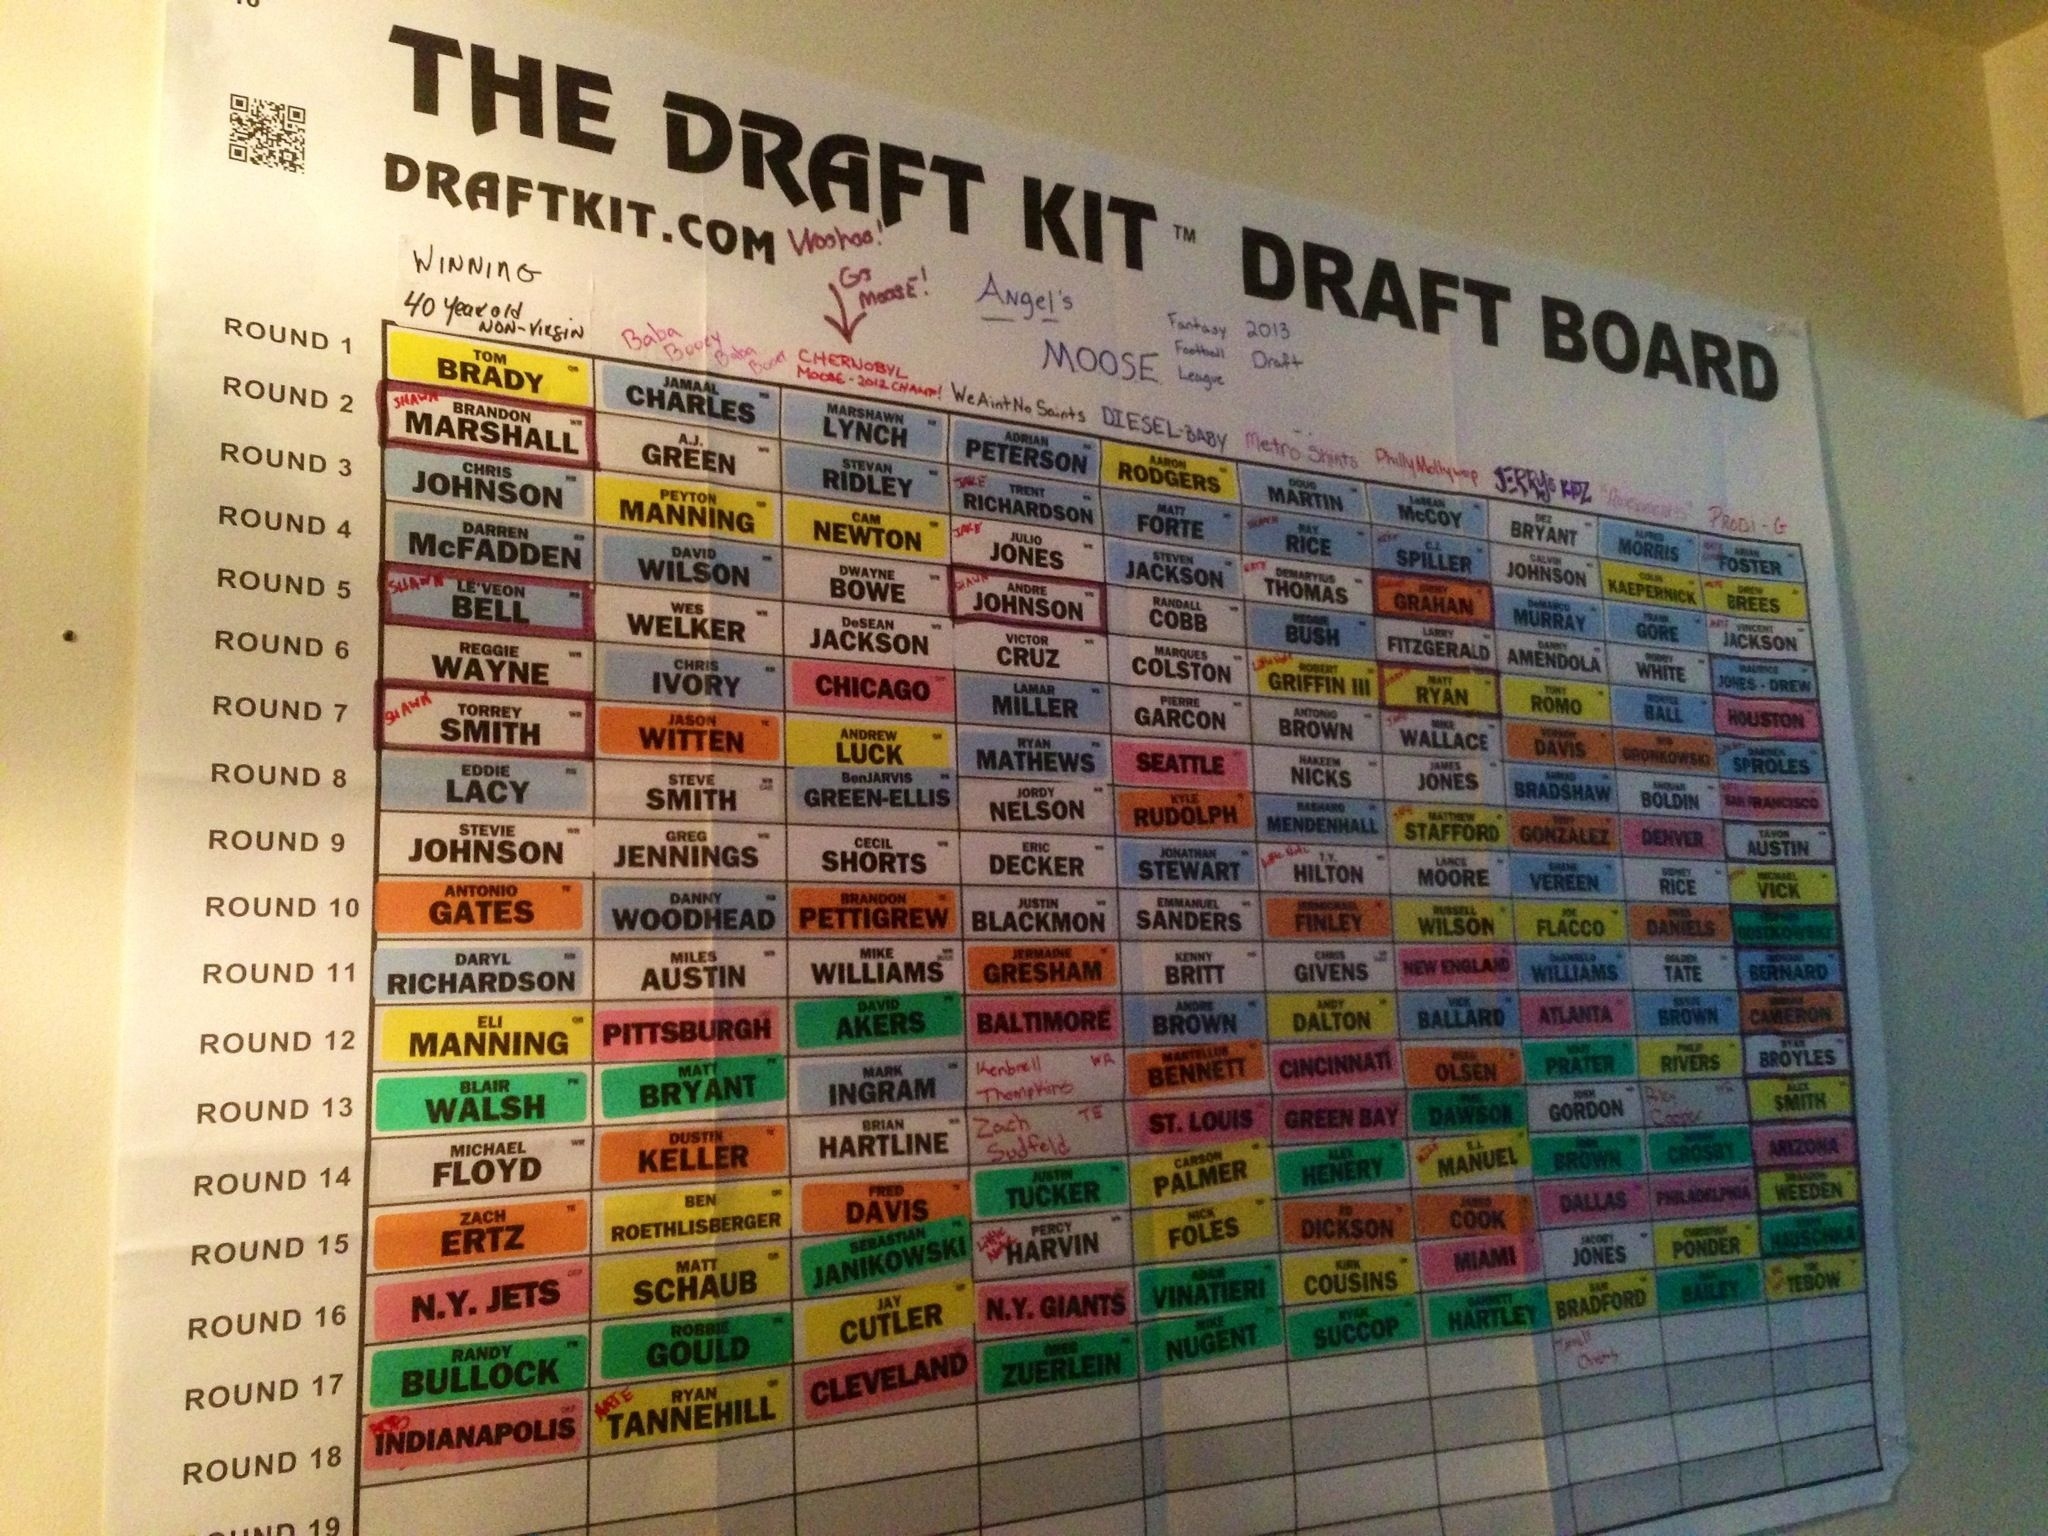 Fantasy Football Draft Board | Cool Stuff! | Draft Fantasy Football - Free Fantasy Football Draft Kit Printable